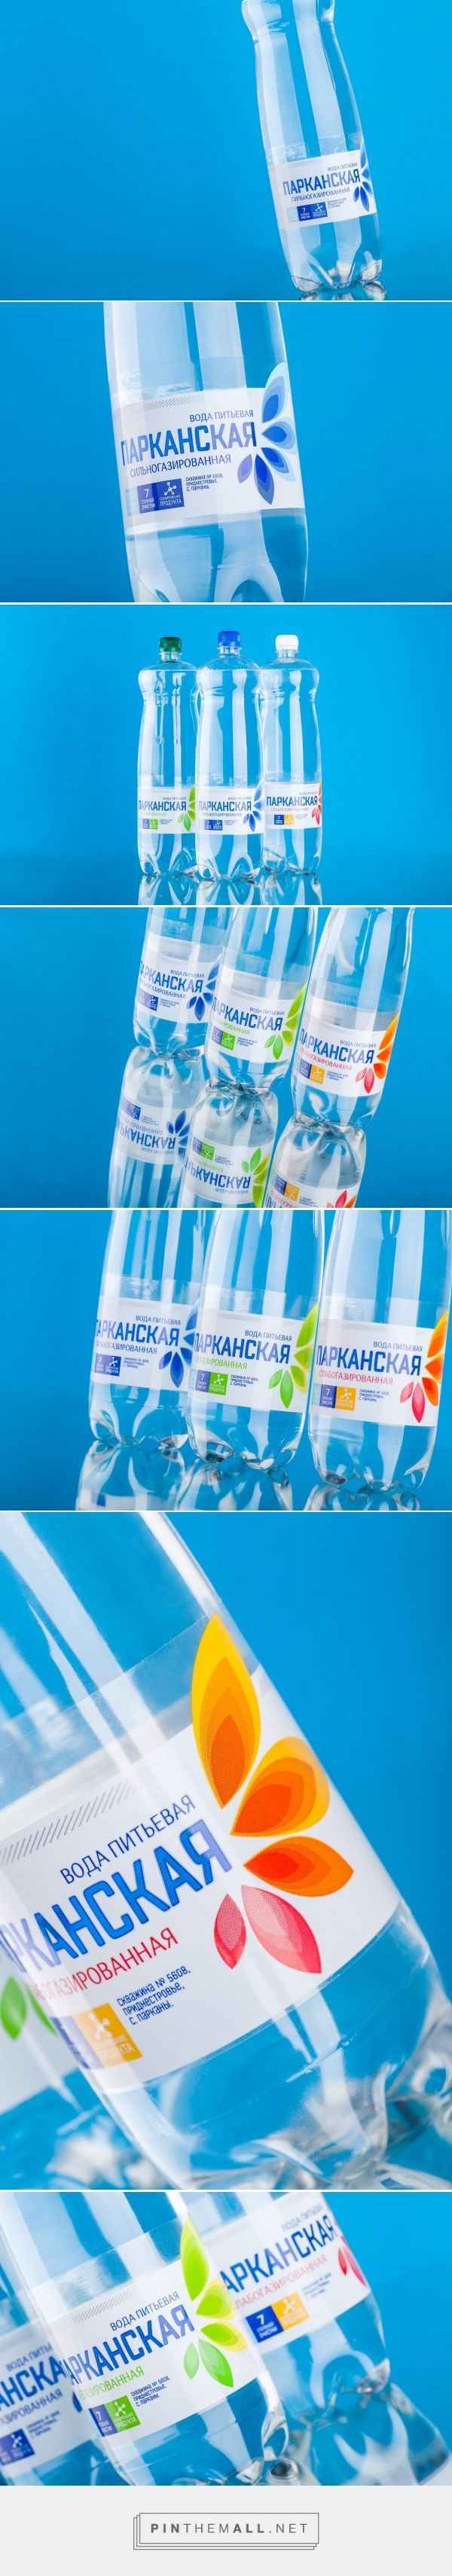 Parkanskaya water - Packaging of the World - Creative Package Design Gallery - http://www.packagingoftheworld.com/2017/10/parkanskaya.html